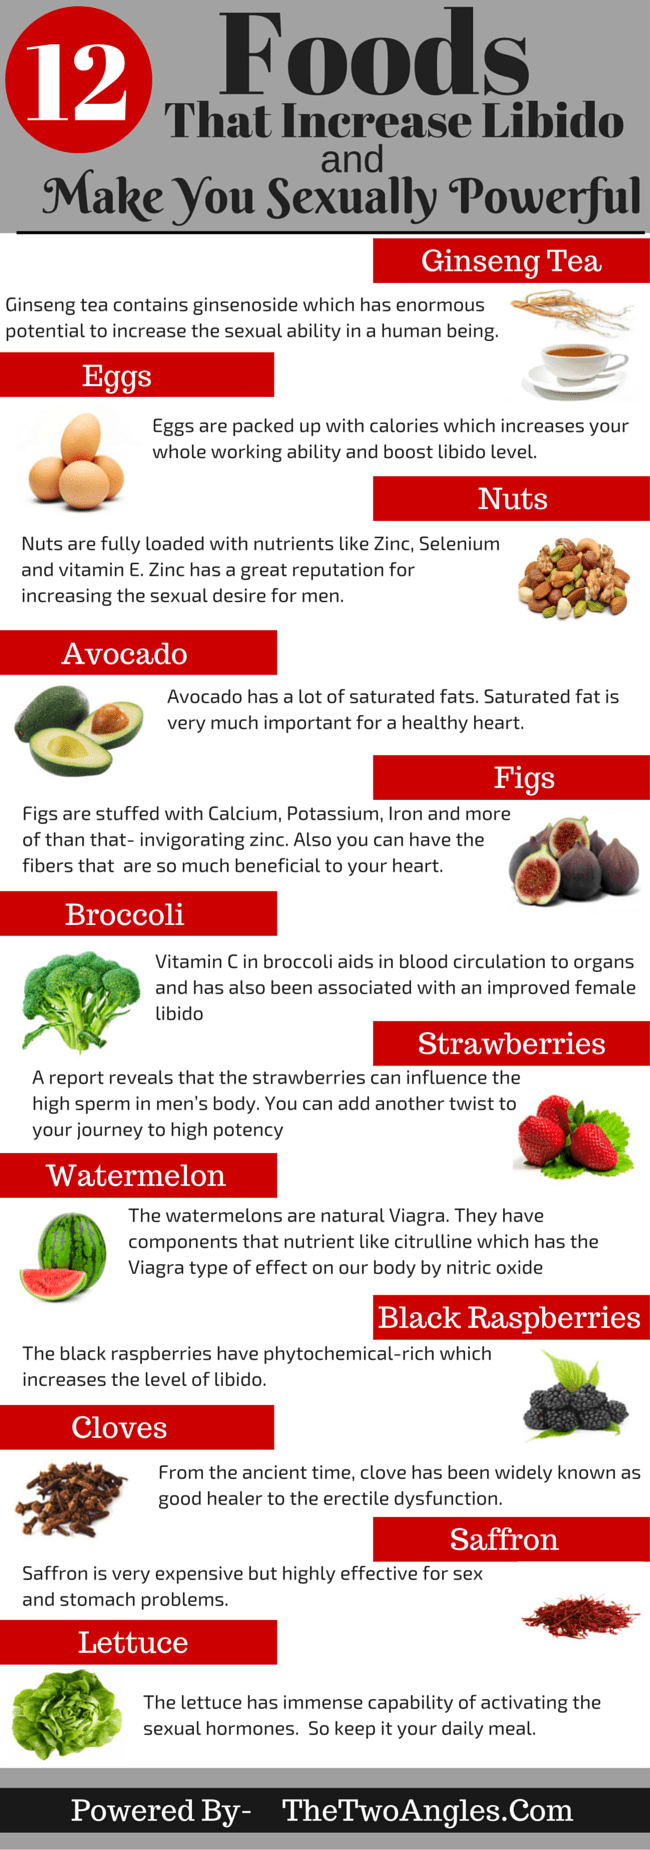 Foods-That-Increase-Libido-Infographic